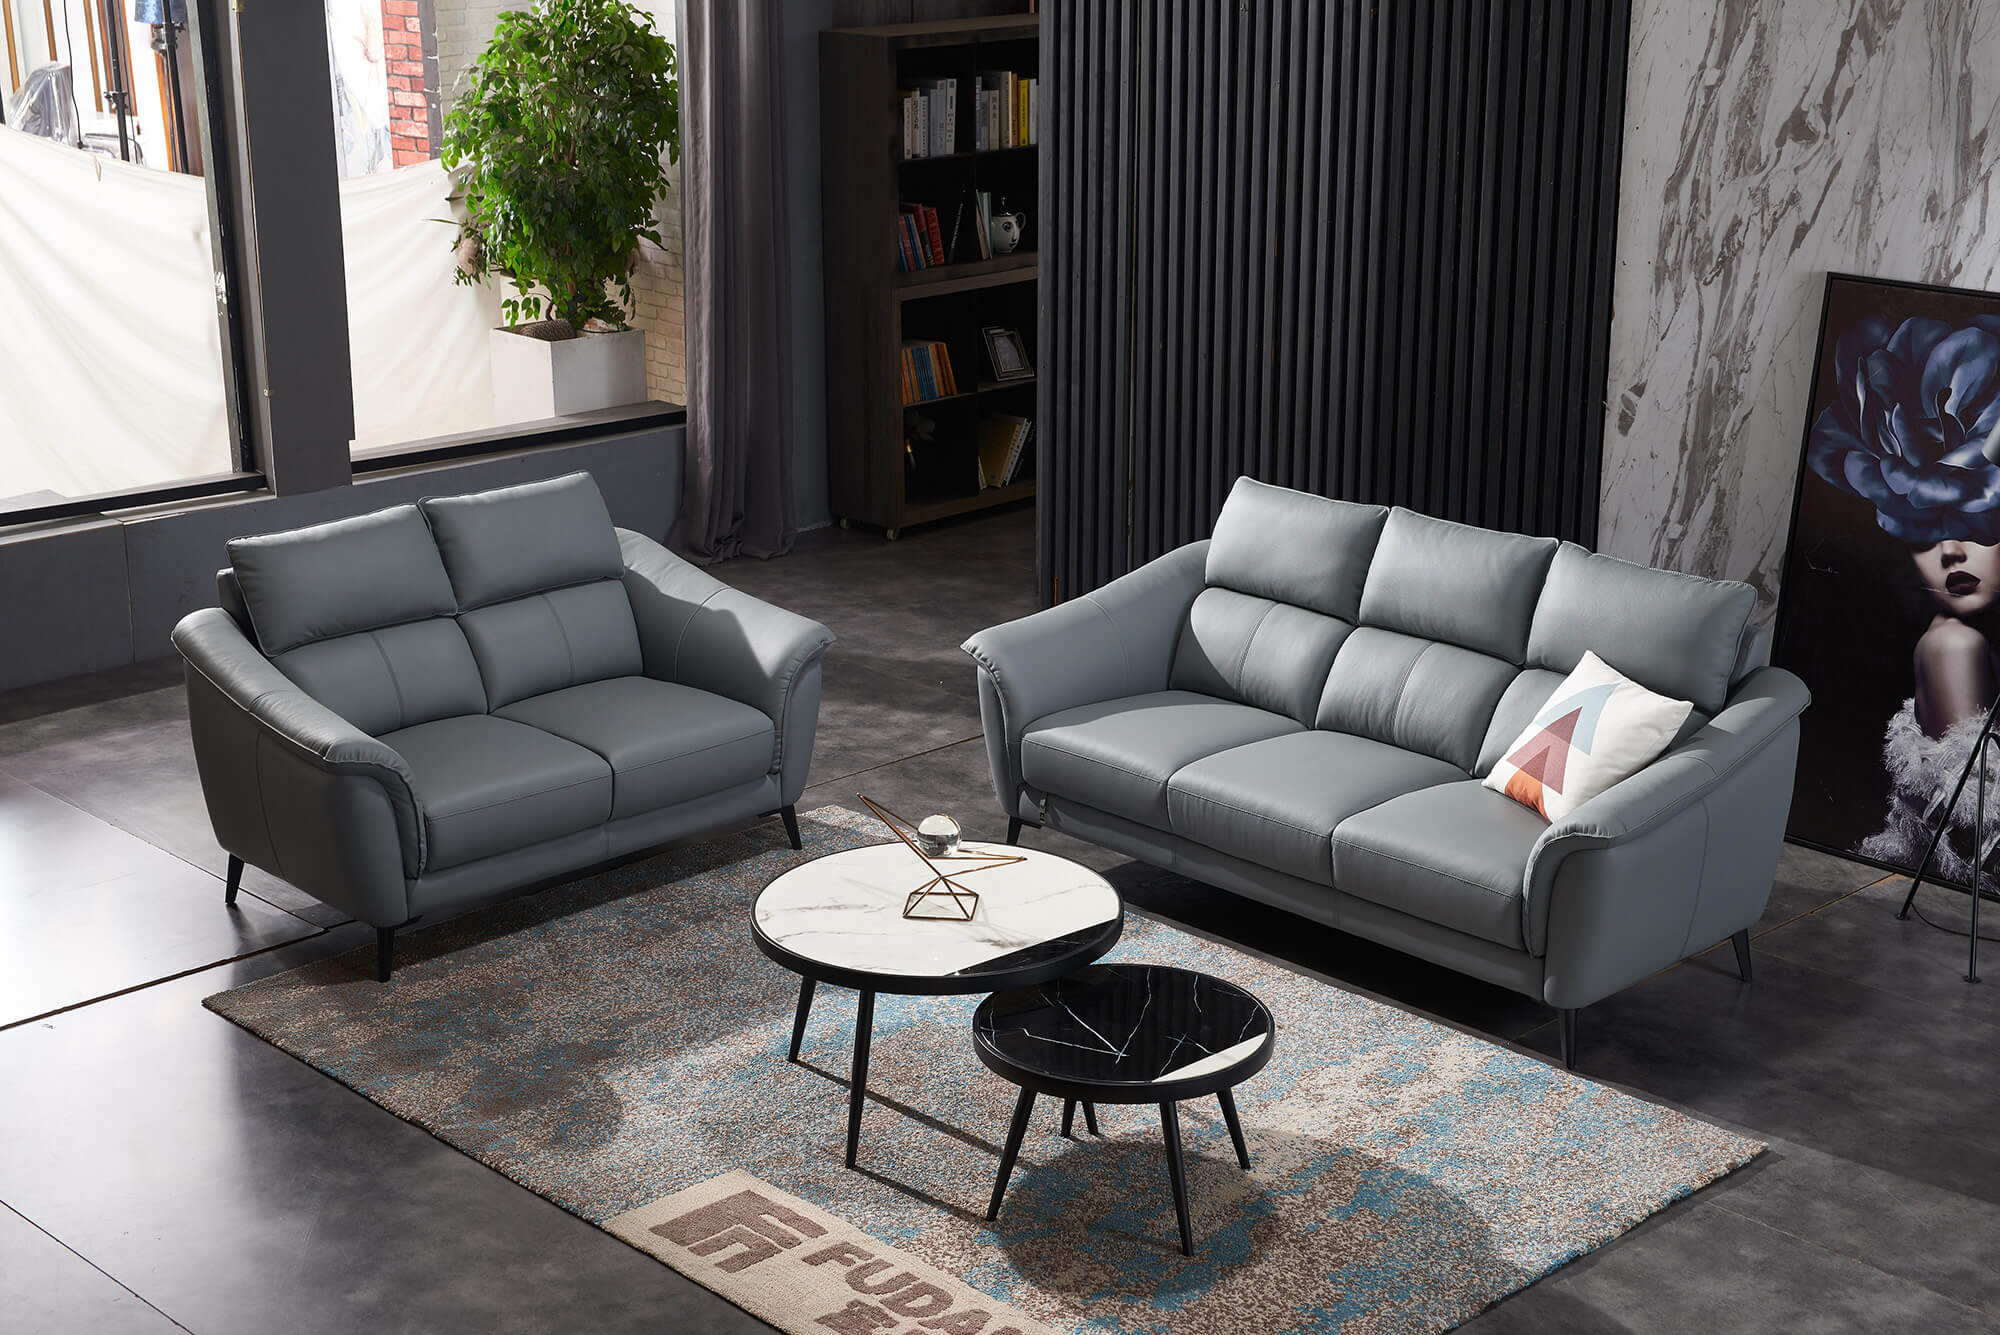 steel grey leather 2 seater and 3 seater sofa set